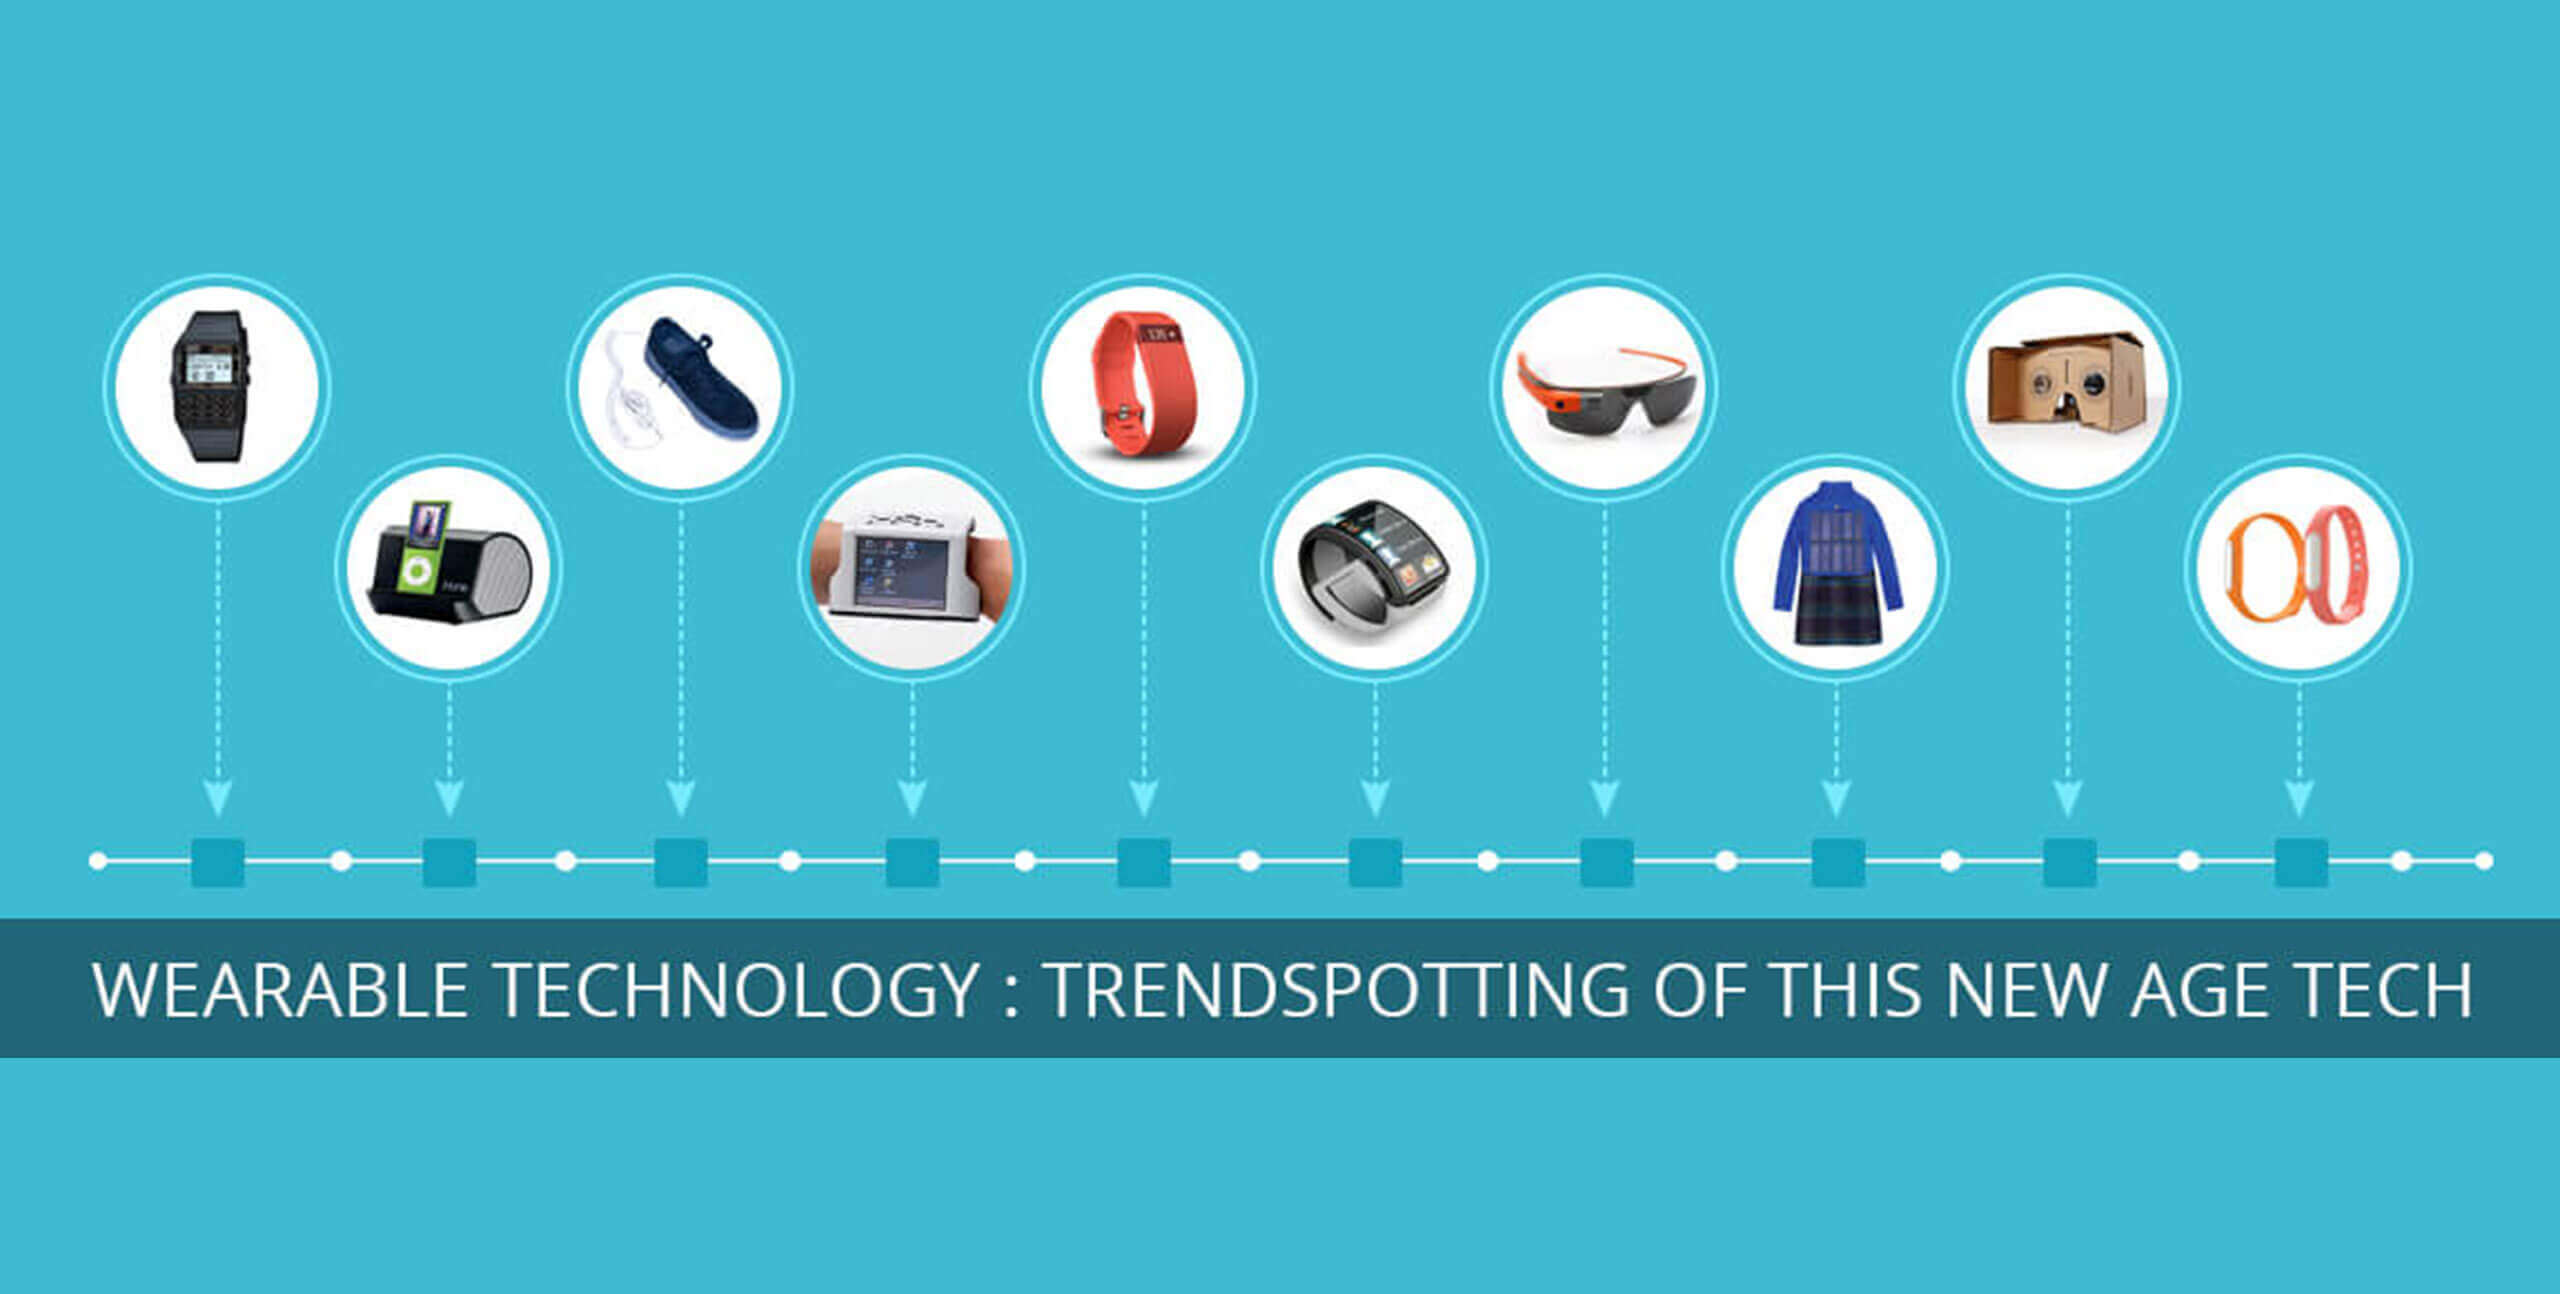 Wearable Technology Trendspotting Of This New Age Tech